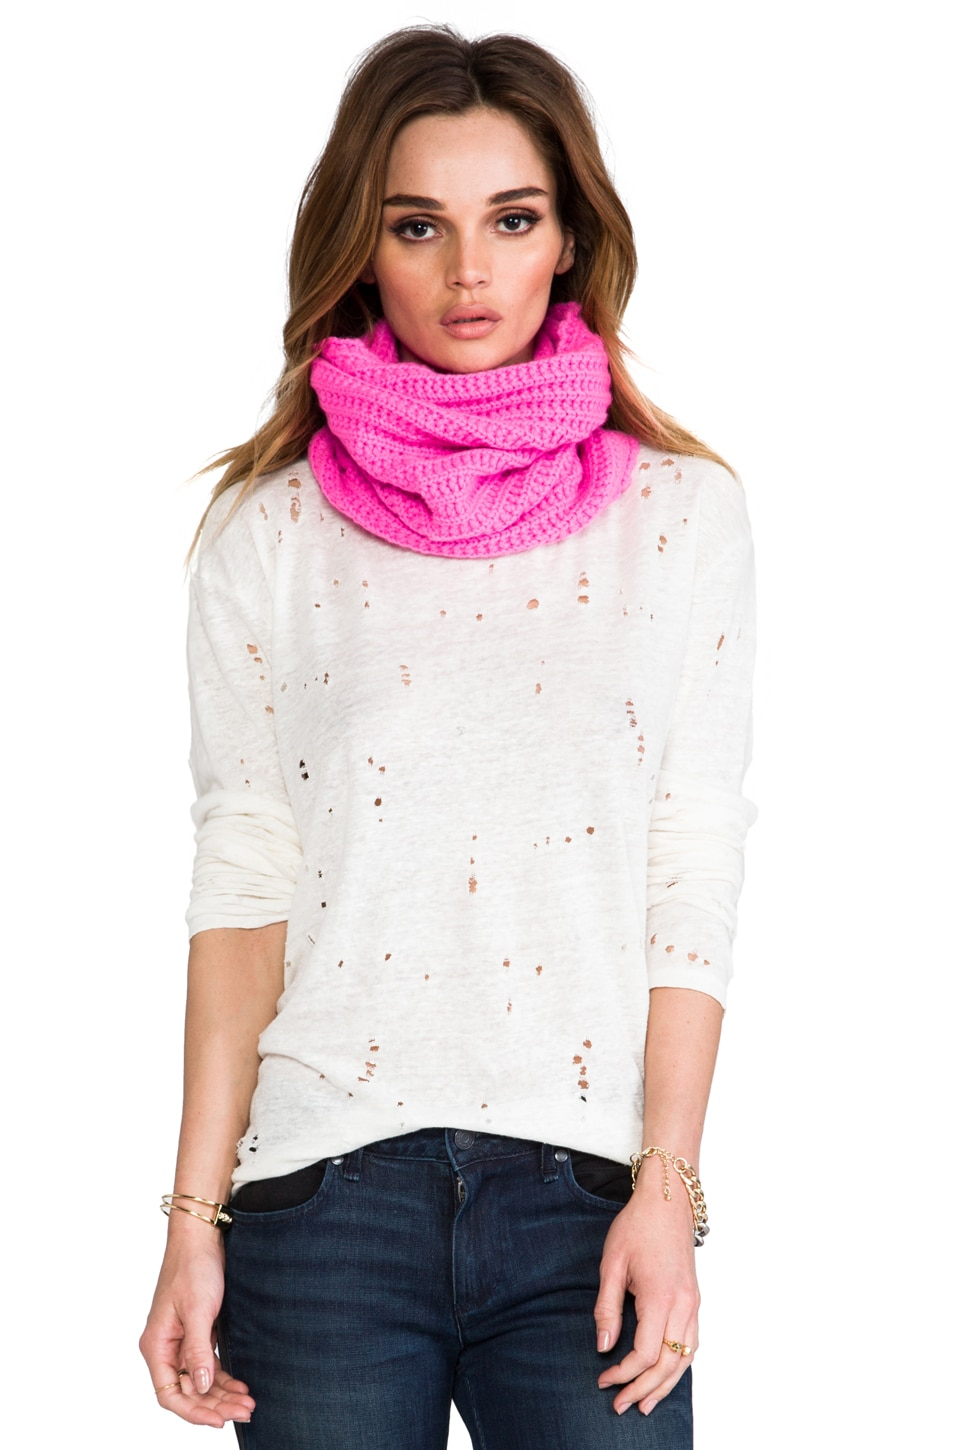 Autumn Cashmere Textured Neckwarmer in Shock